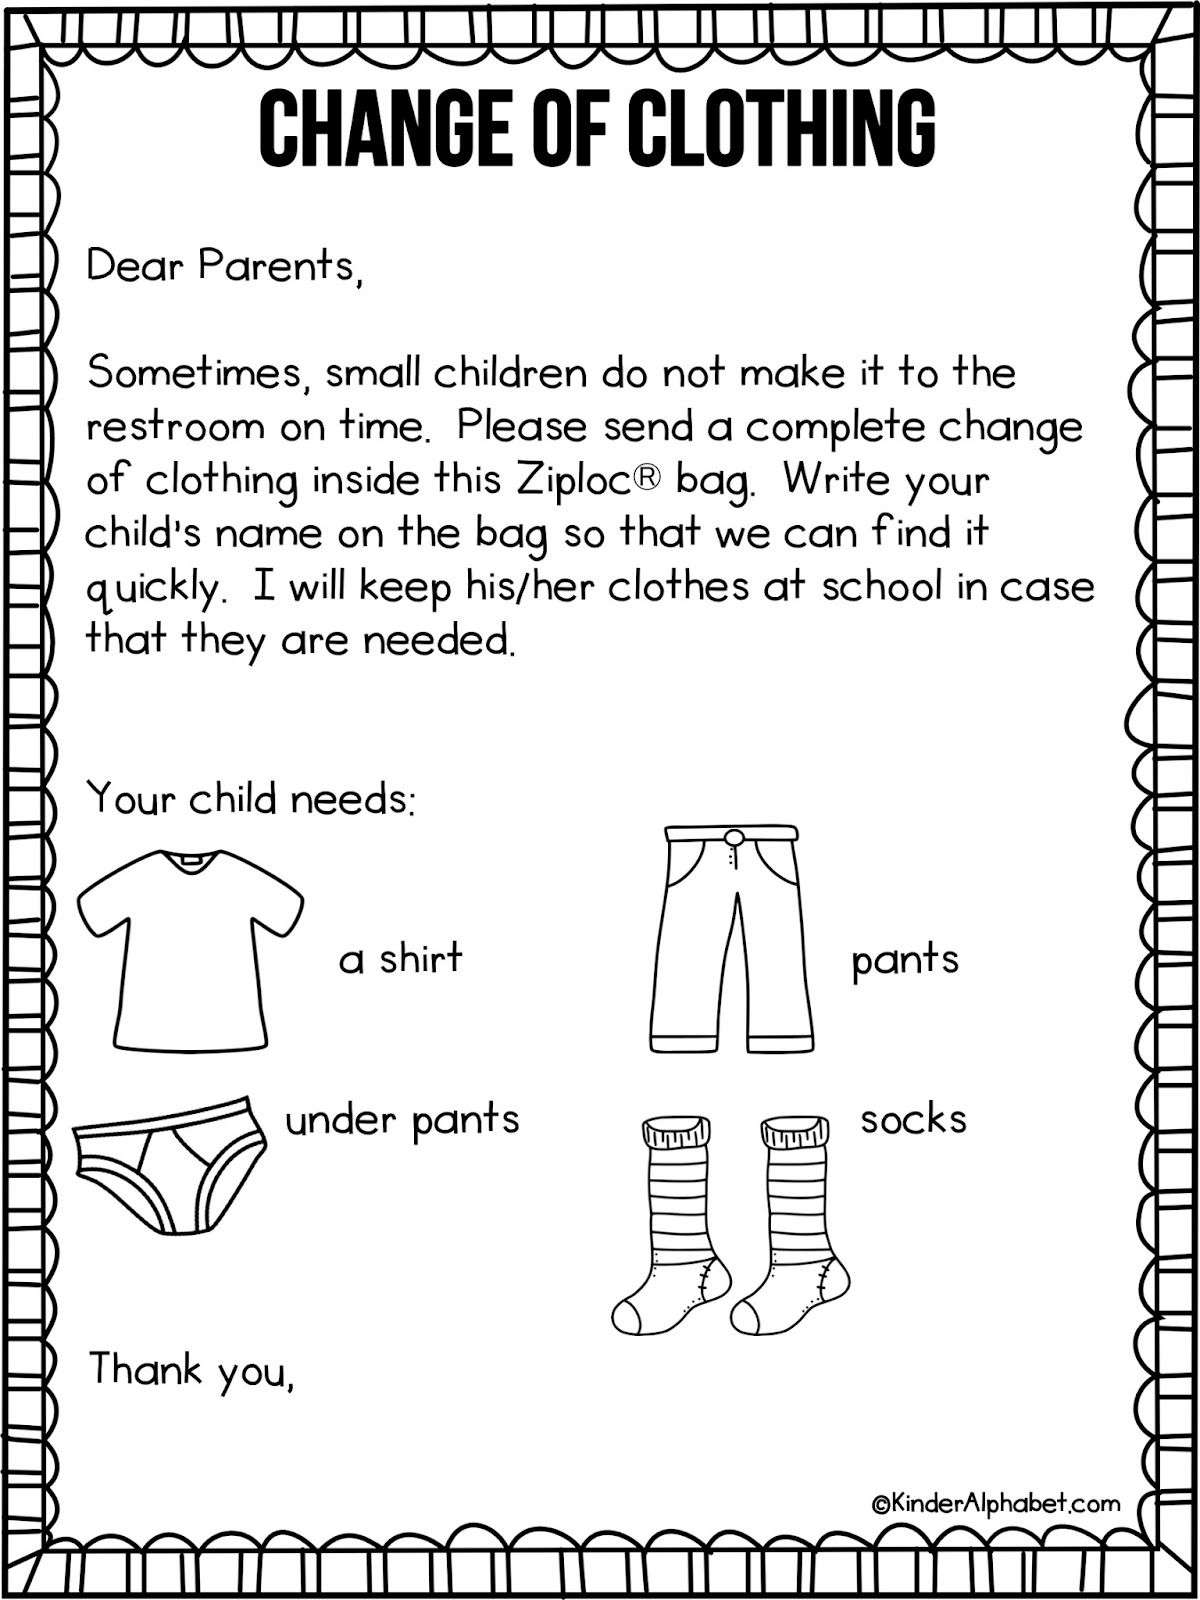 Daycare Letter to Parents Template - Parent Letter for Change Of Clothing Free From Kinderalphabet Via